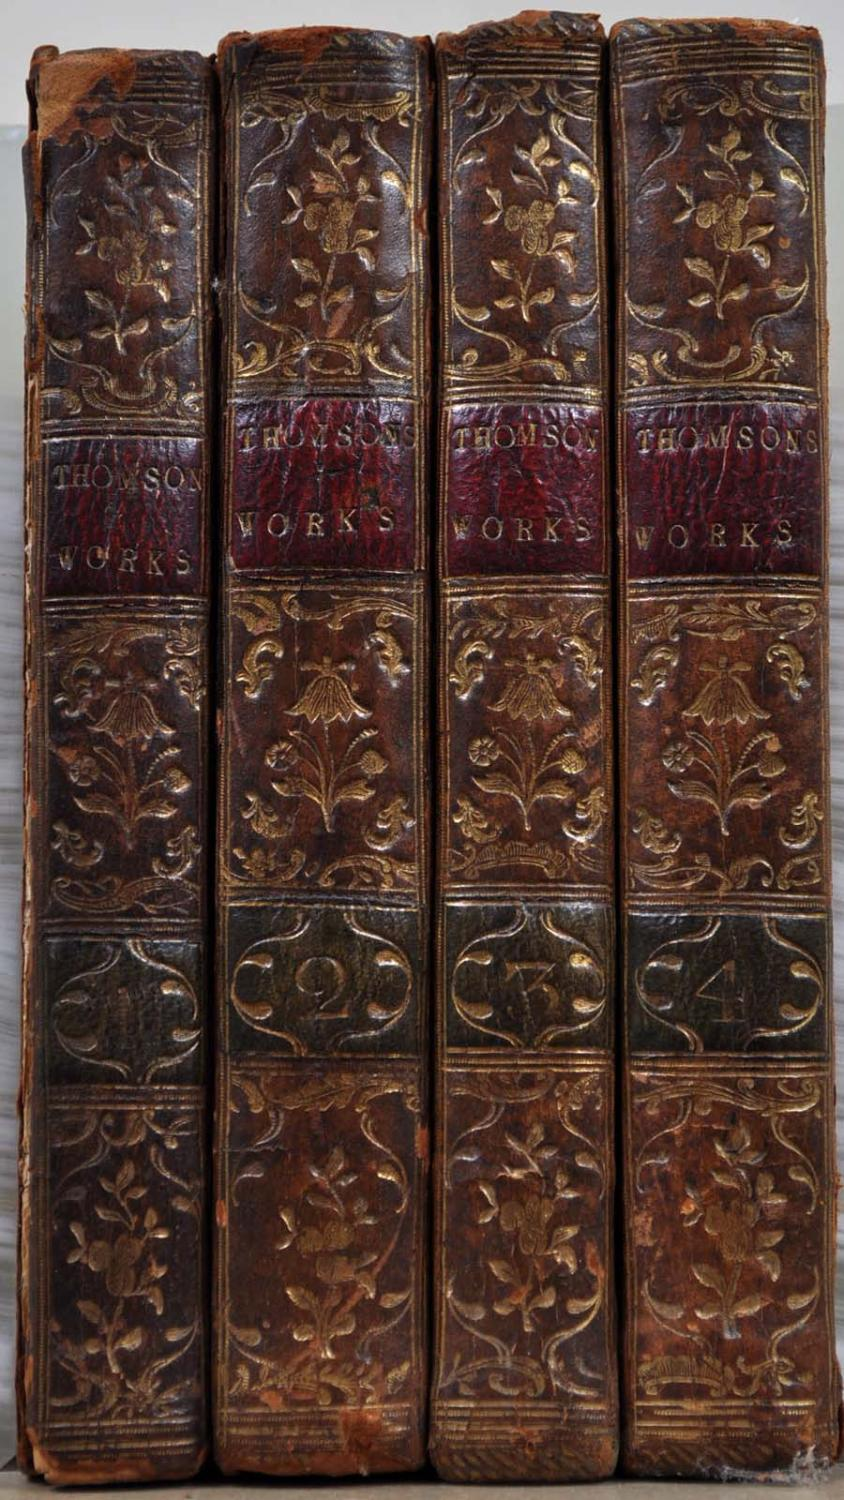 THE WORKS OF JAMES THOMSON. With His Last Corrections and Improvements In Four Volumes. Four volume...